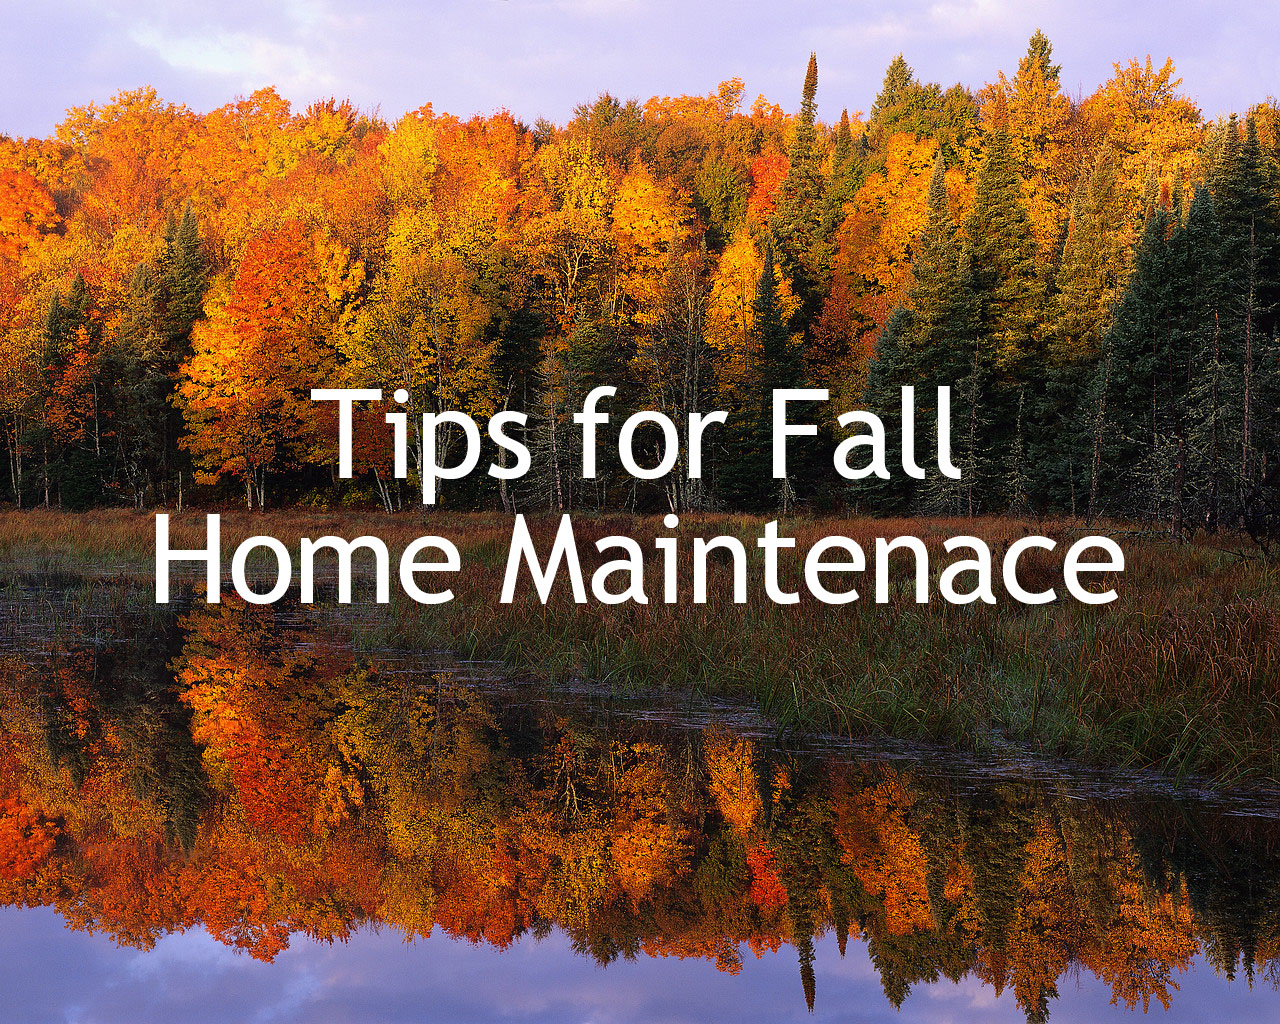 Fall Home Maintenance Tips fall home maintenance tips - inlanta mortgage, inc. - loans for